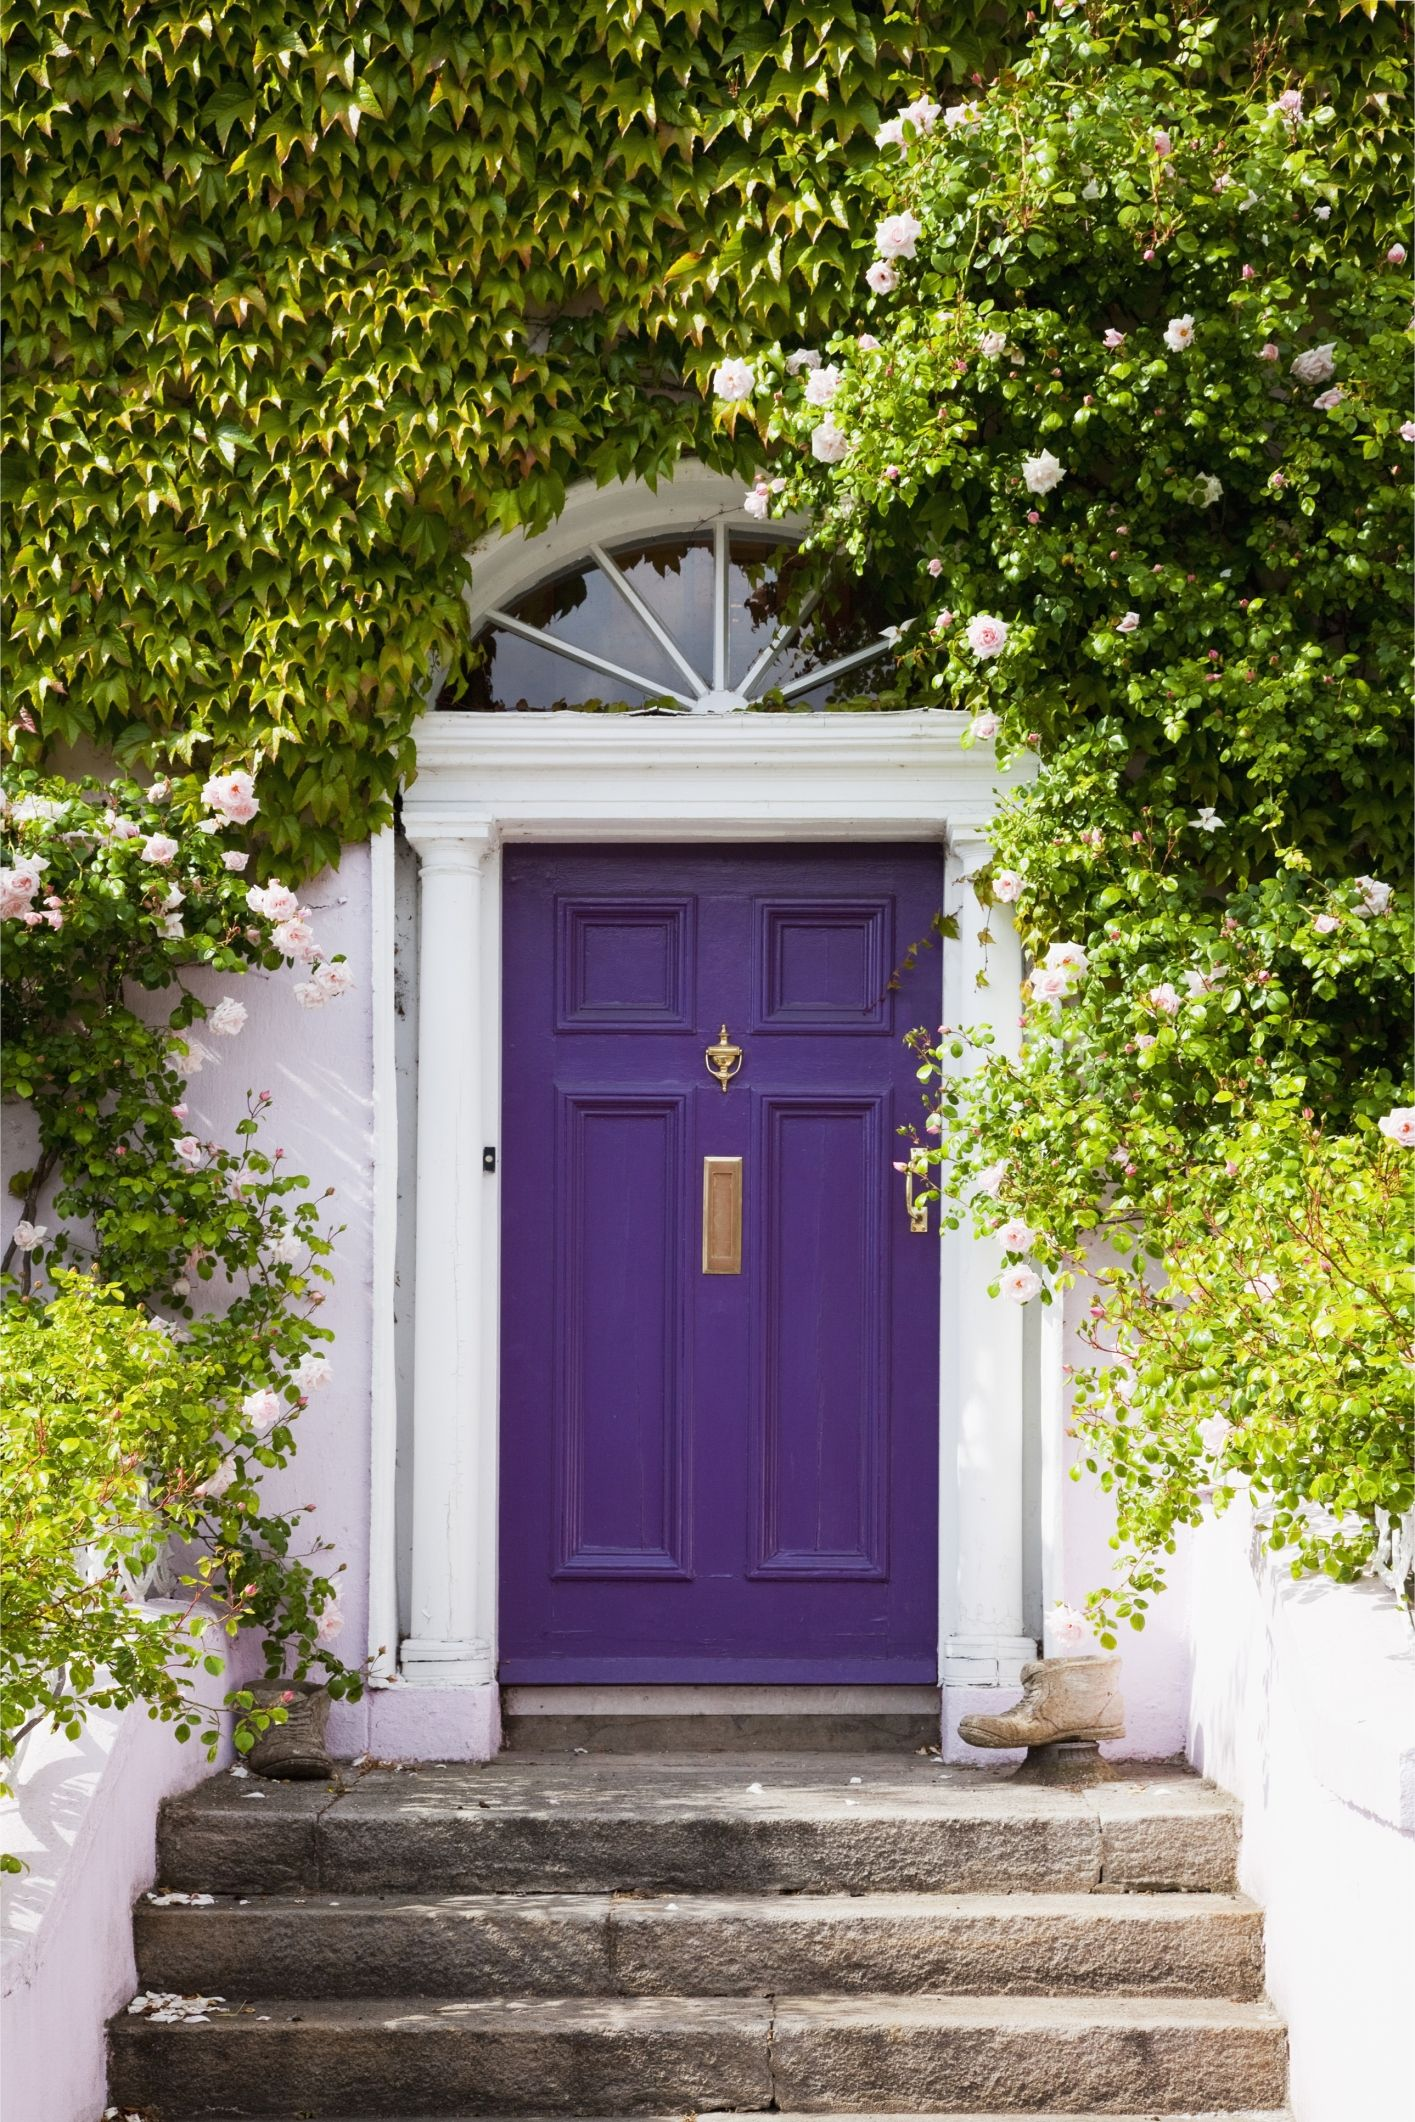 painted residential front doors. Nothing More Welcoming Then A Brightly Painted Door. Puts Me In Good Mood Every Time. Call Linda @ Coldwell Banker Residential Brokerage 973.699.8535 Front Doors